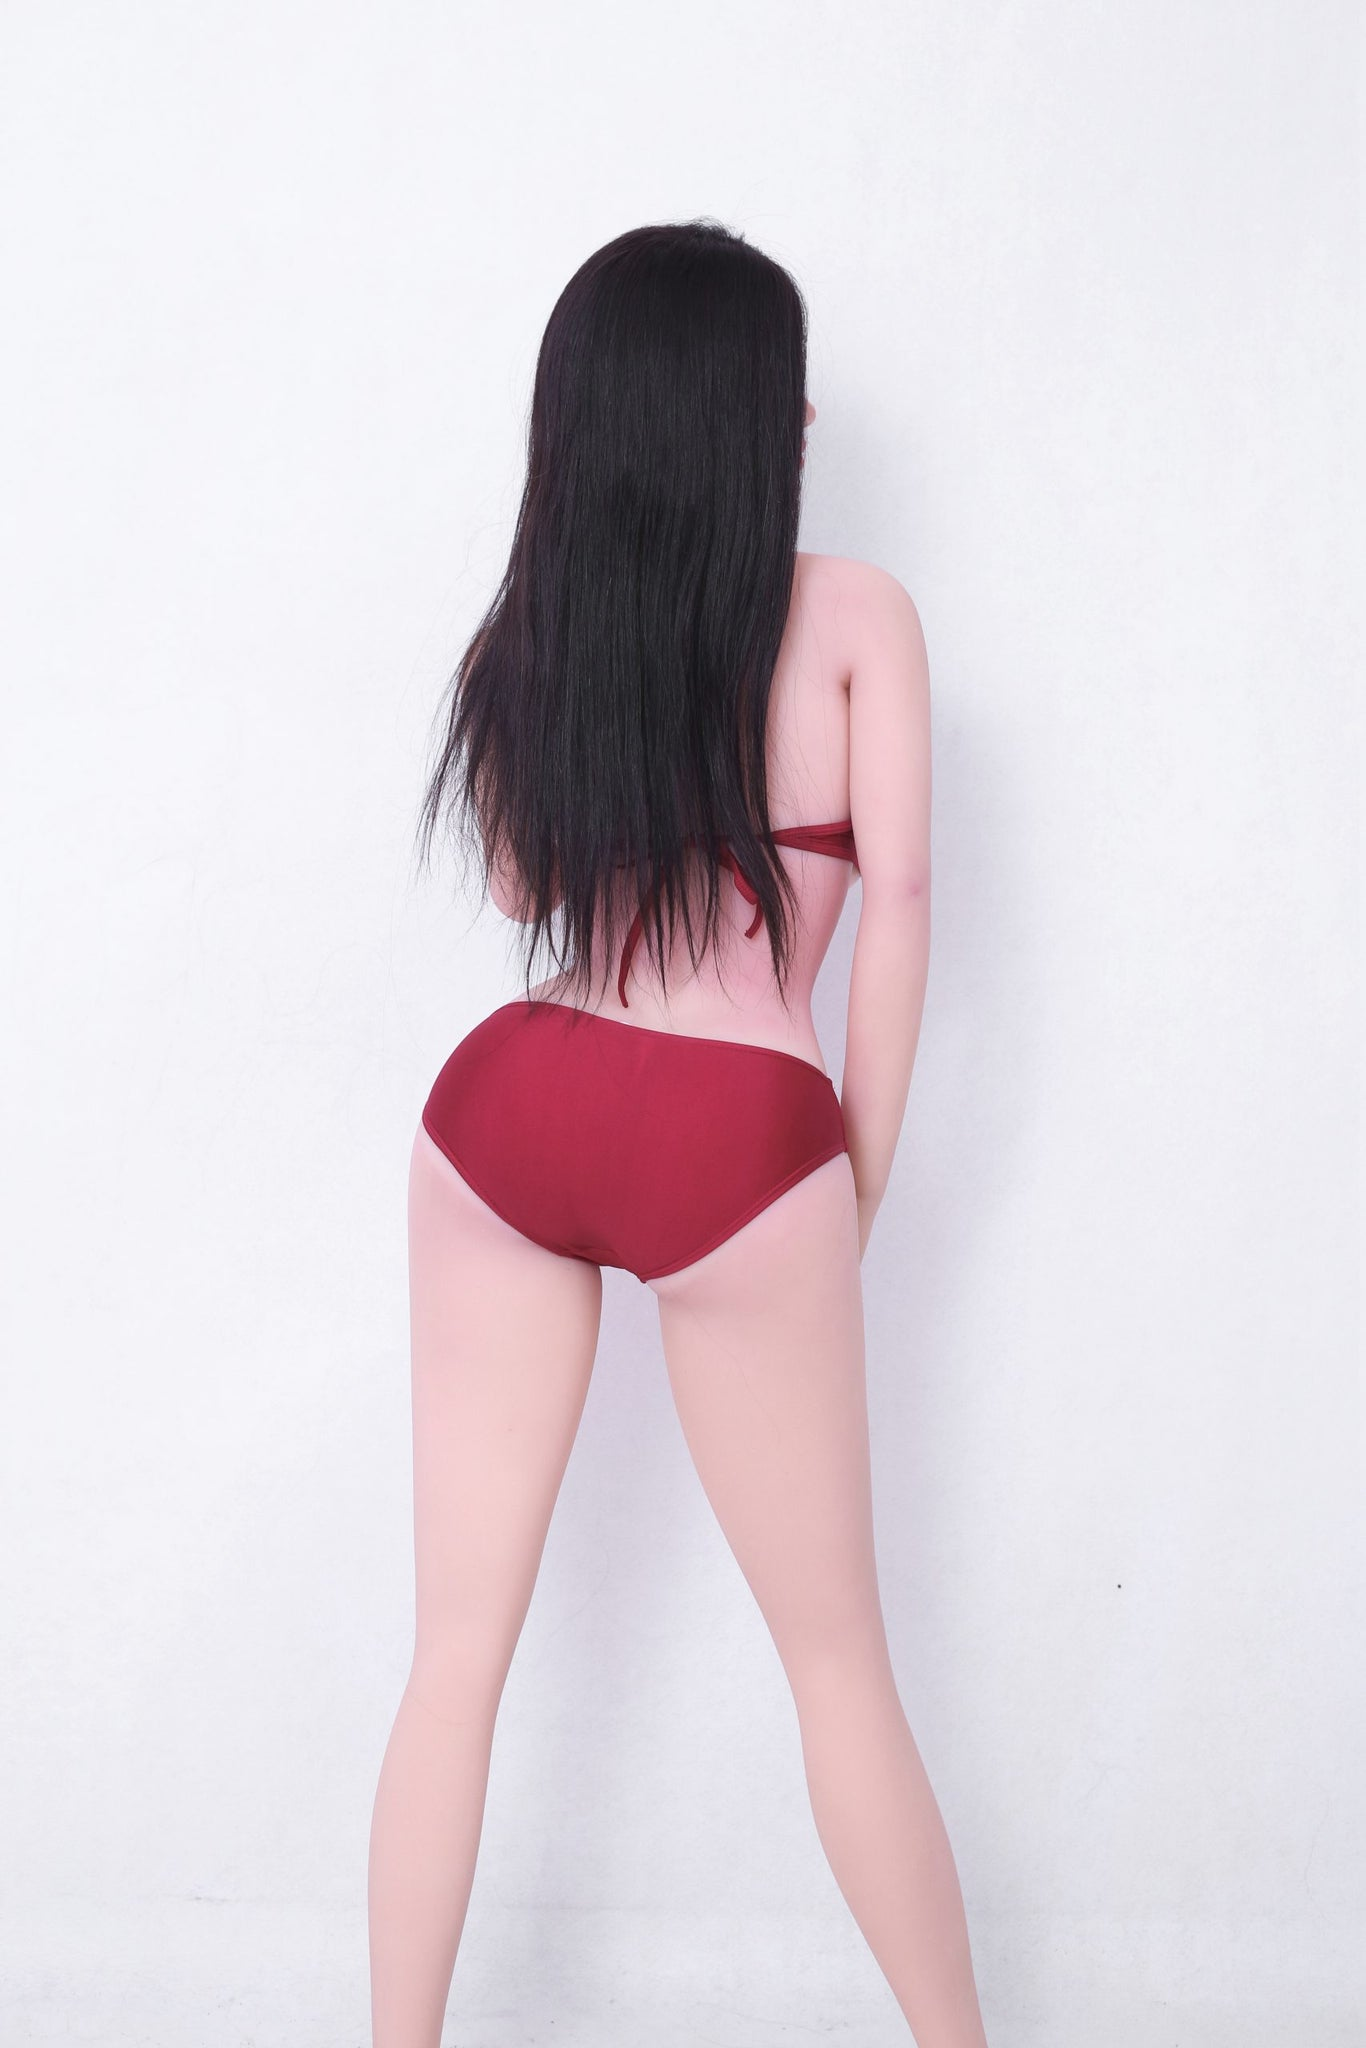 kiki 165cm af black hair big boobs athletic tpe sex doll(8)